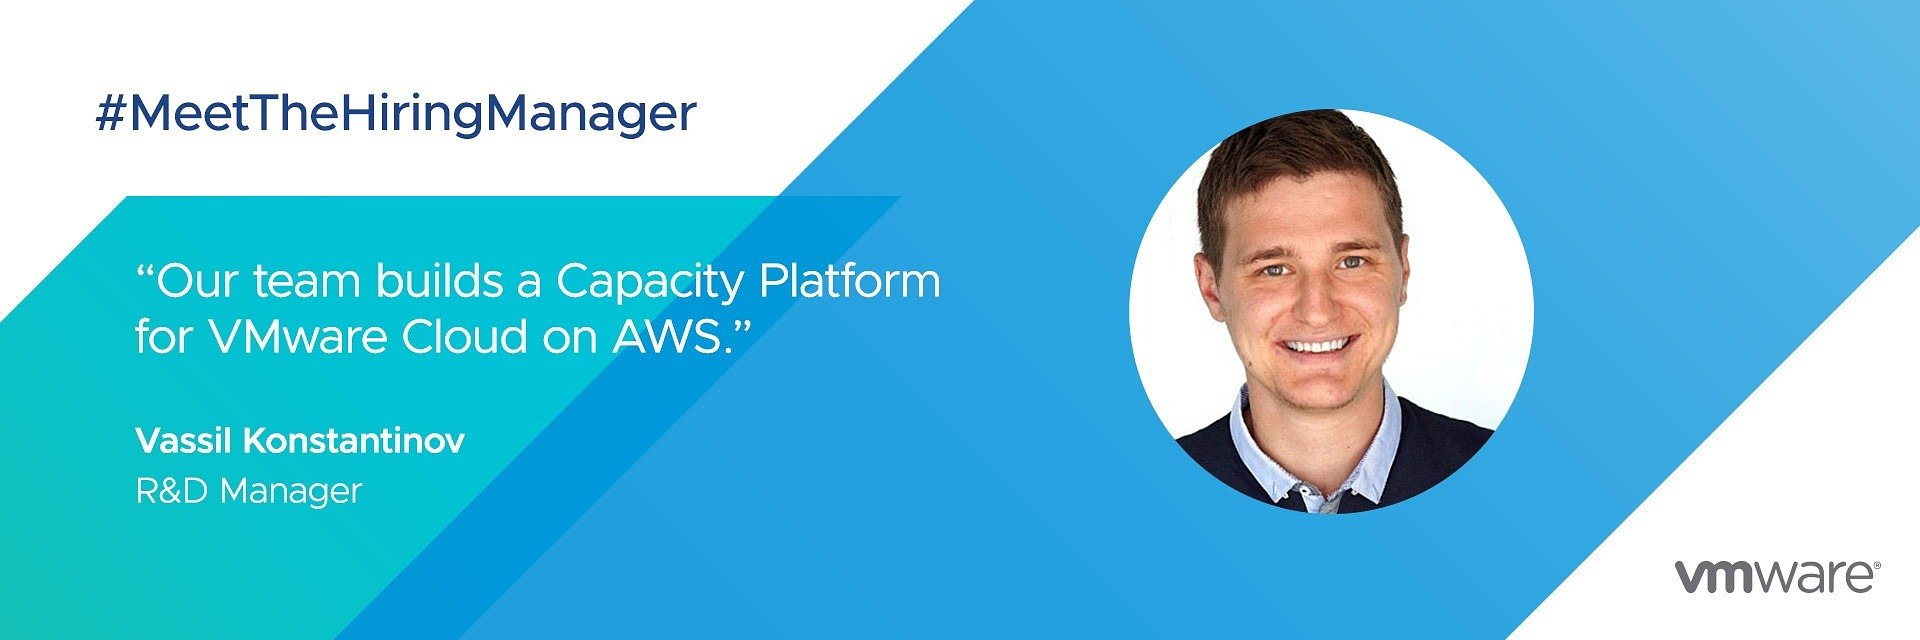 The Hiring Manager: Vasil Konstantinov, R&D Manager VMware Cloud on AWS